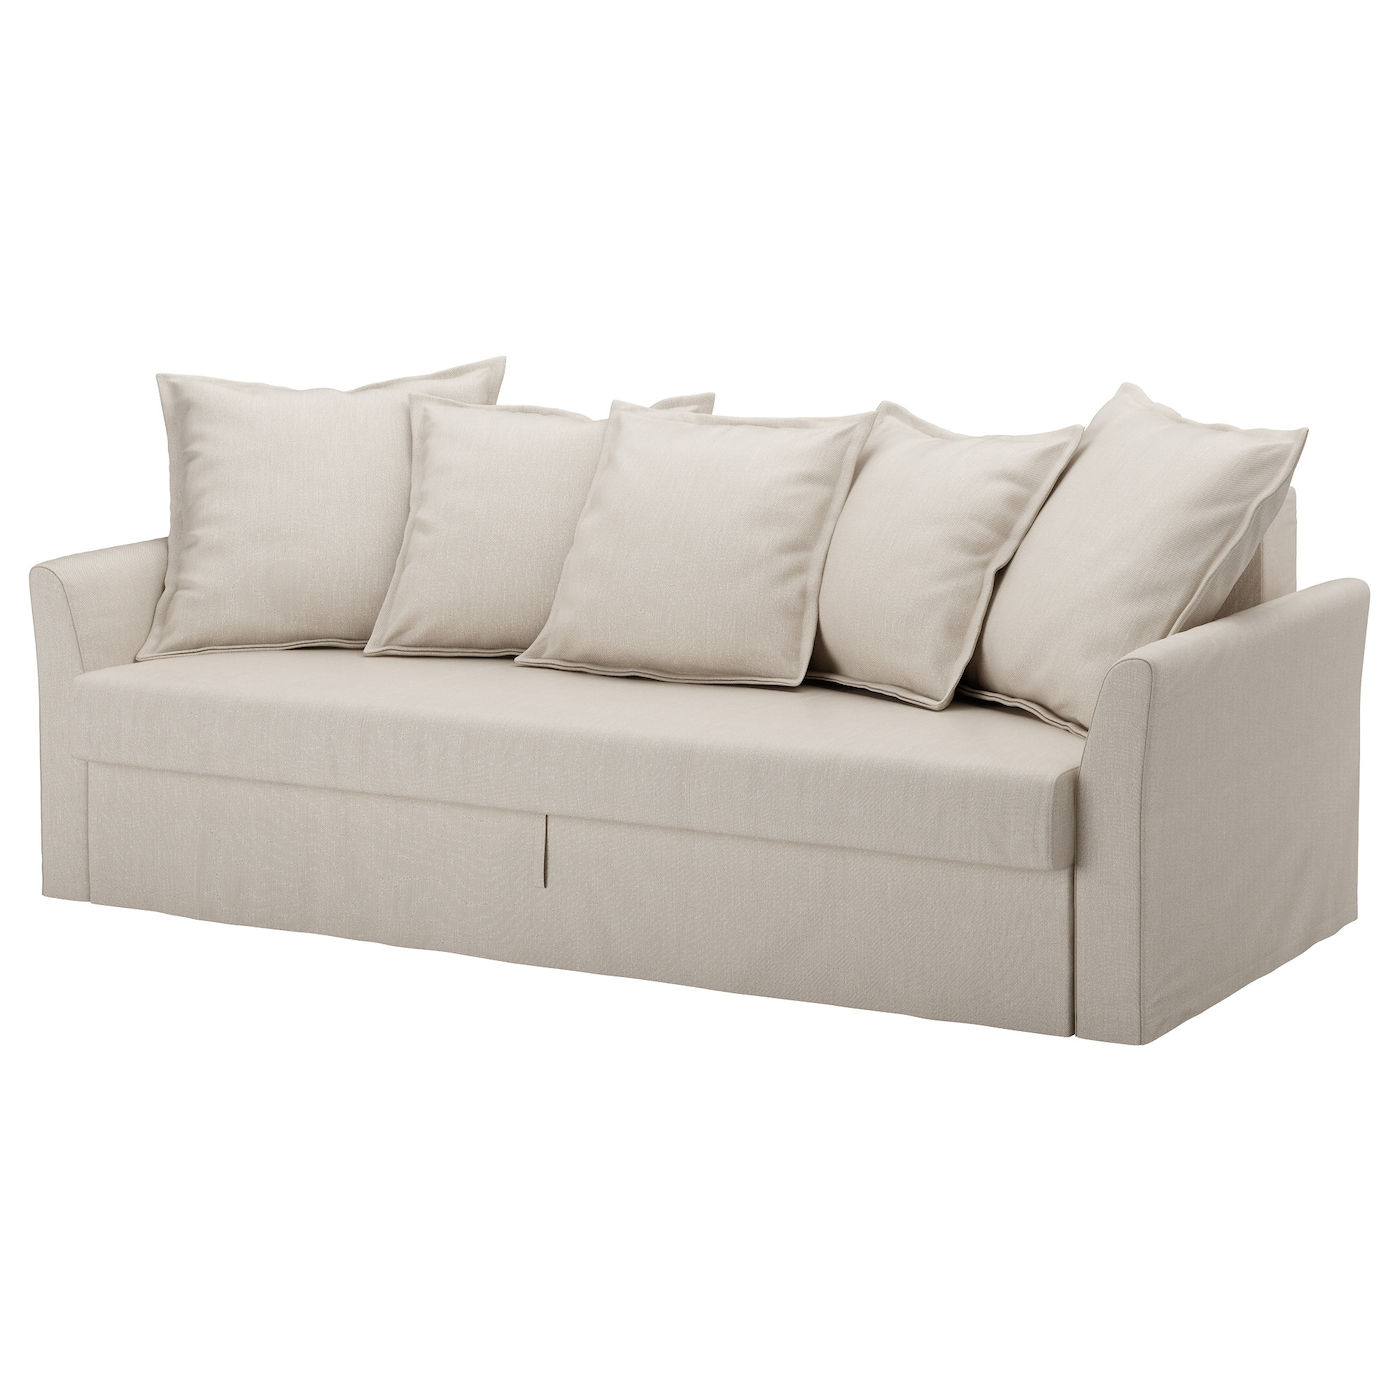 Holmsund three seat sofa bed cover nordvalla beige ikea for Sofa bed cover